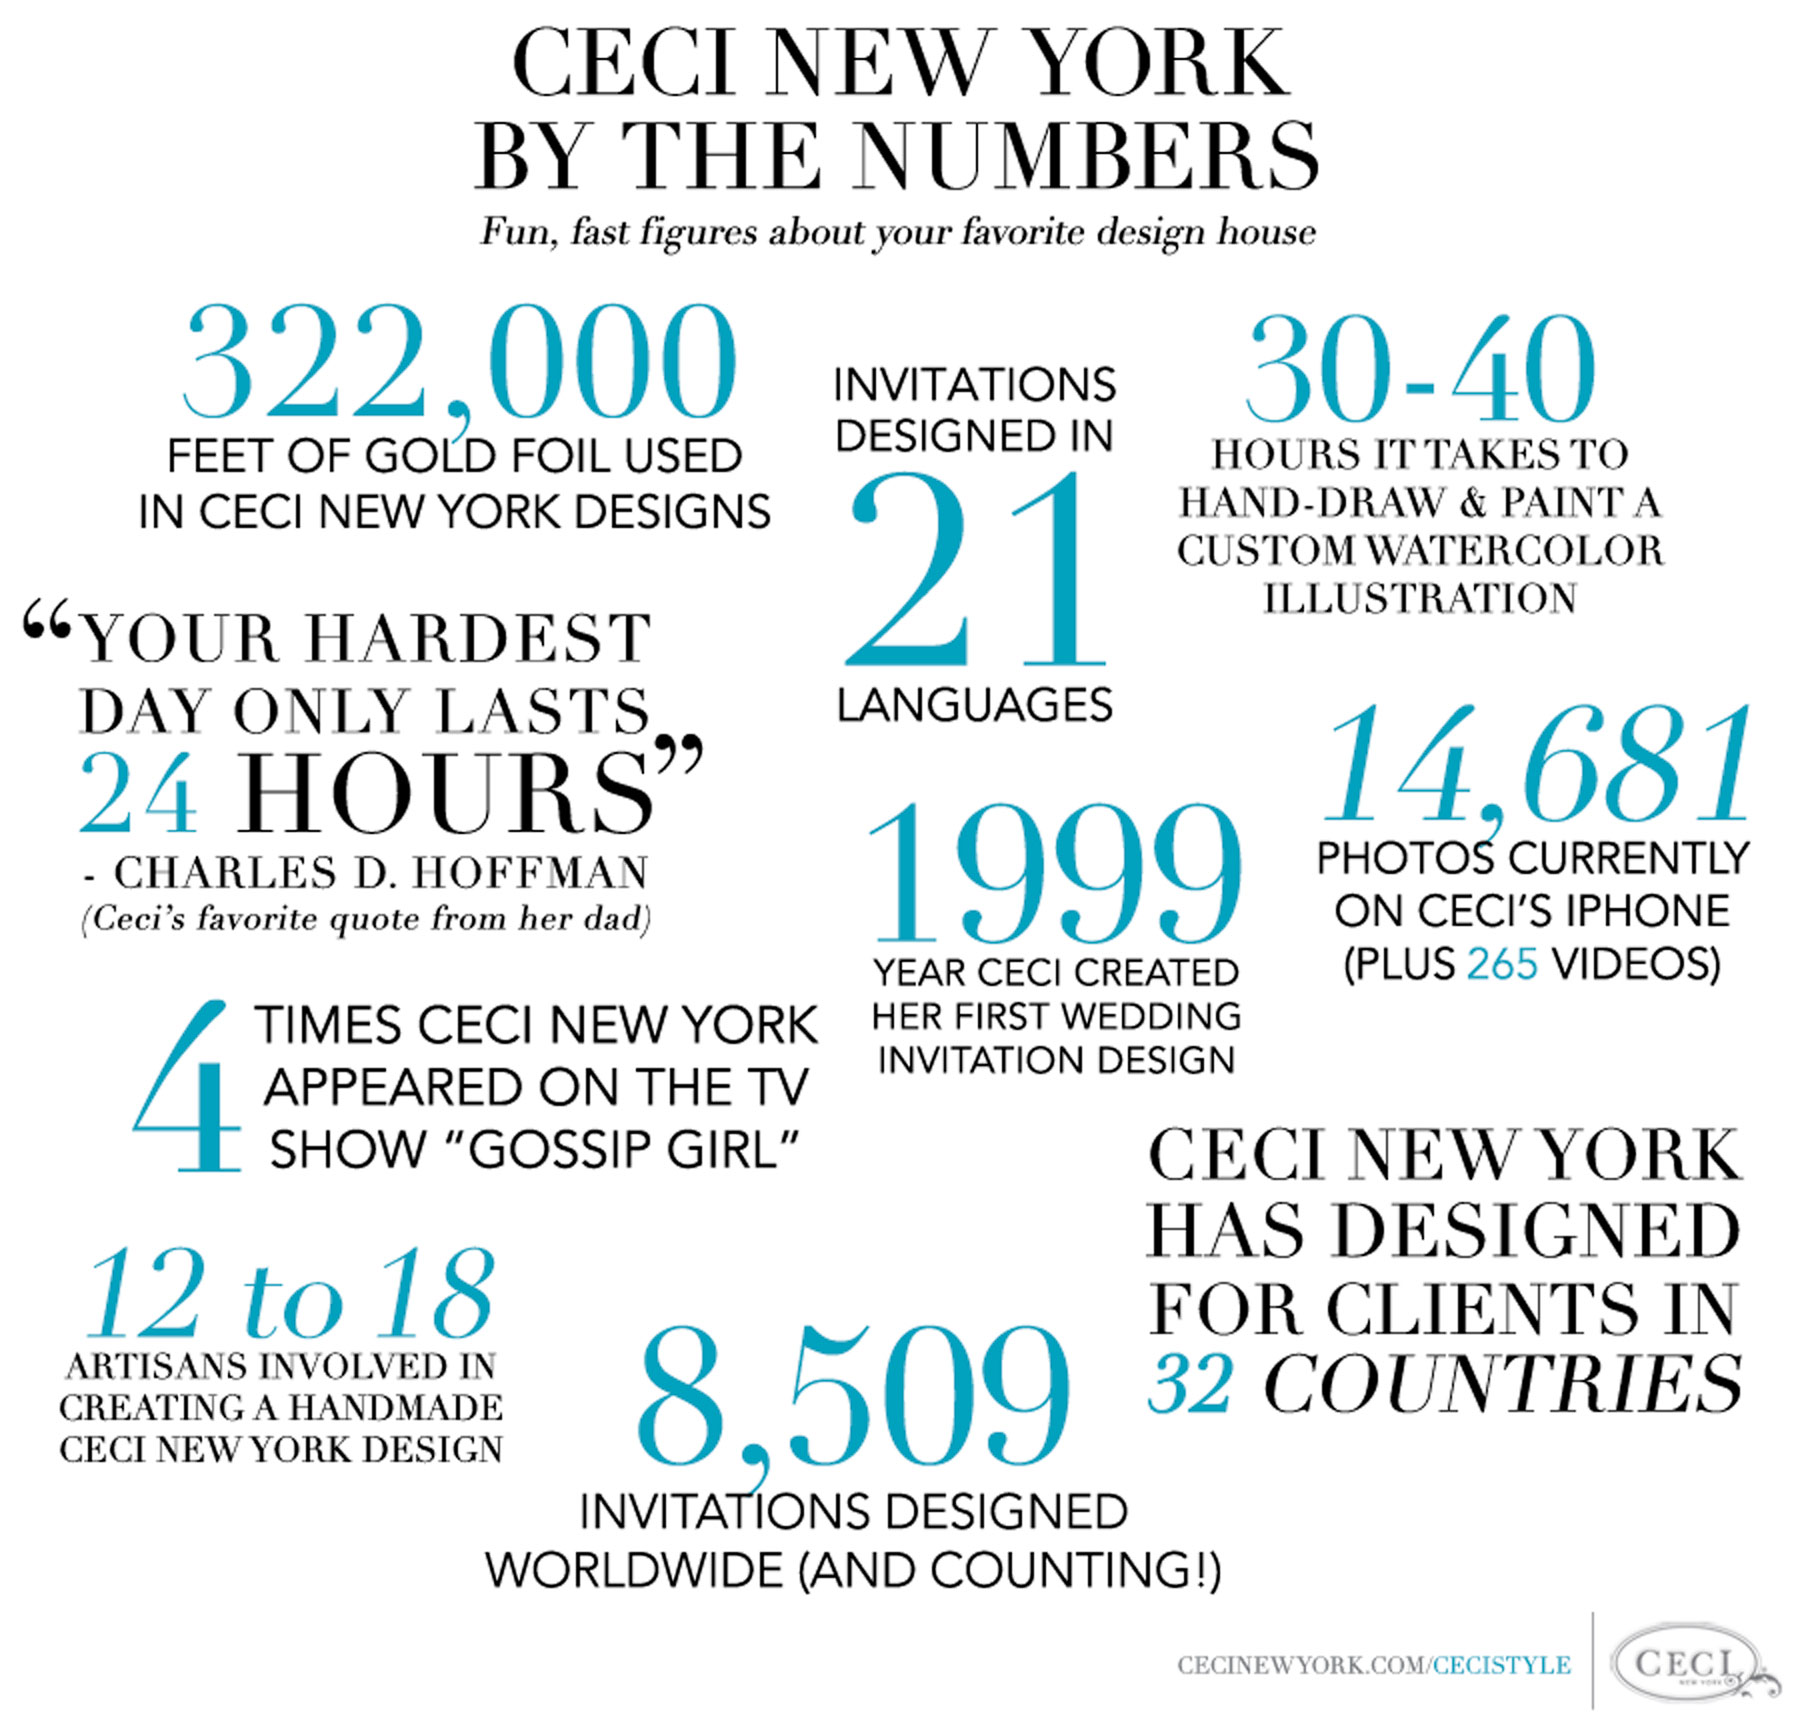 Ceci New York by the Numbers - Fun, fast figures about your favorite design house